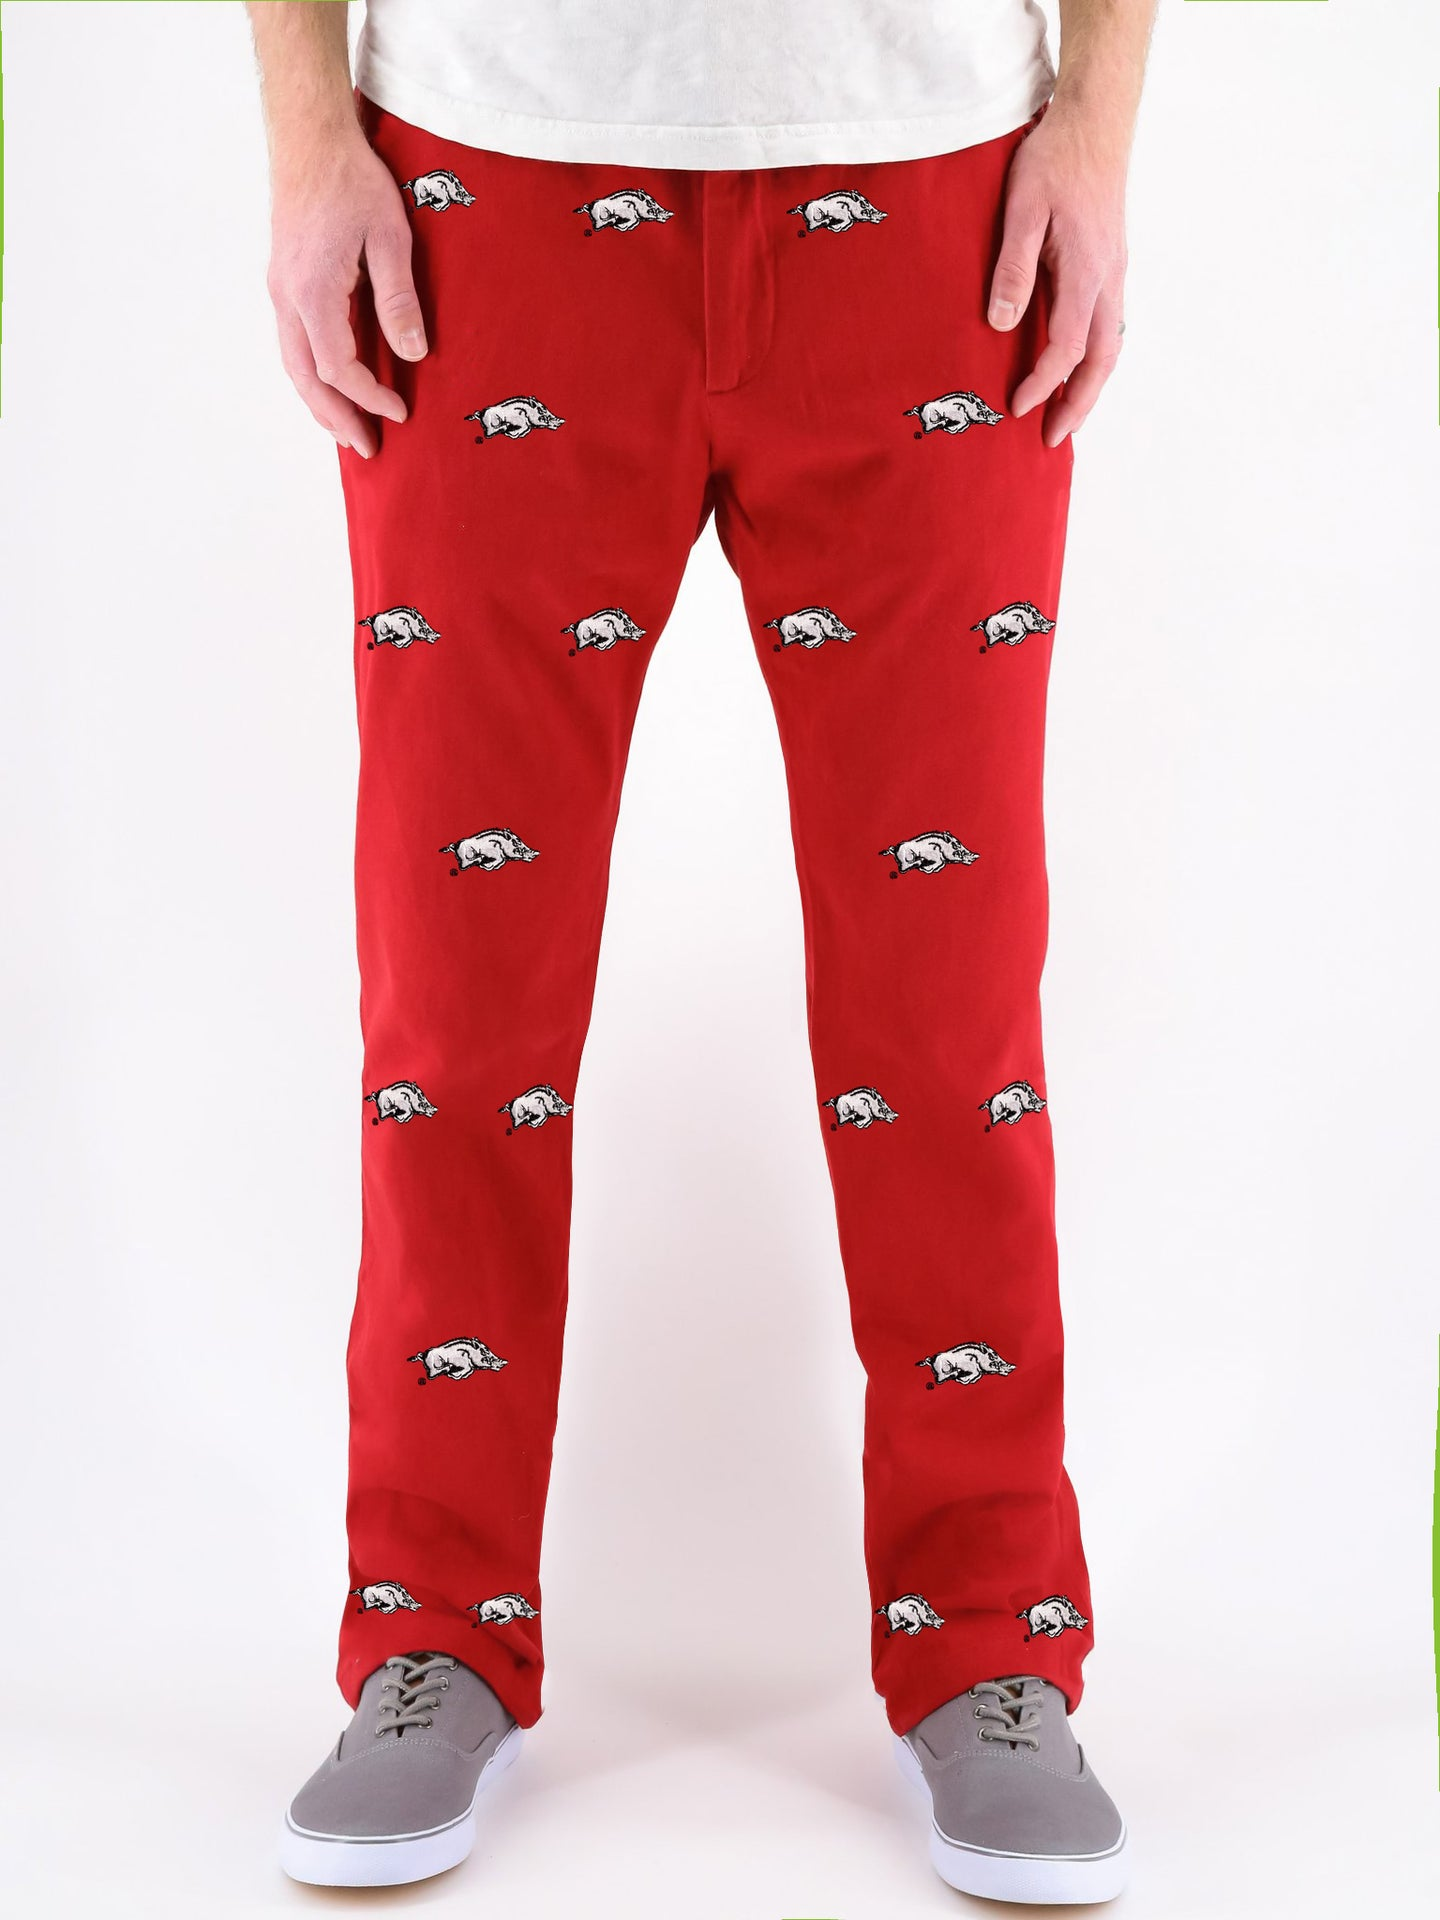 Arkansas Razorback Red Pants